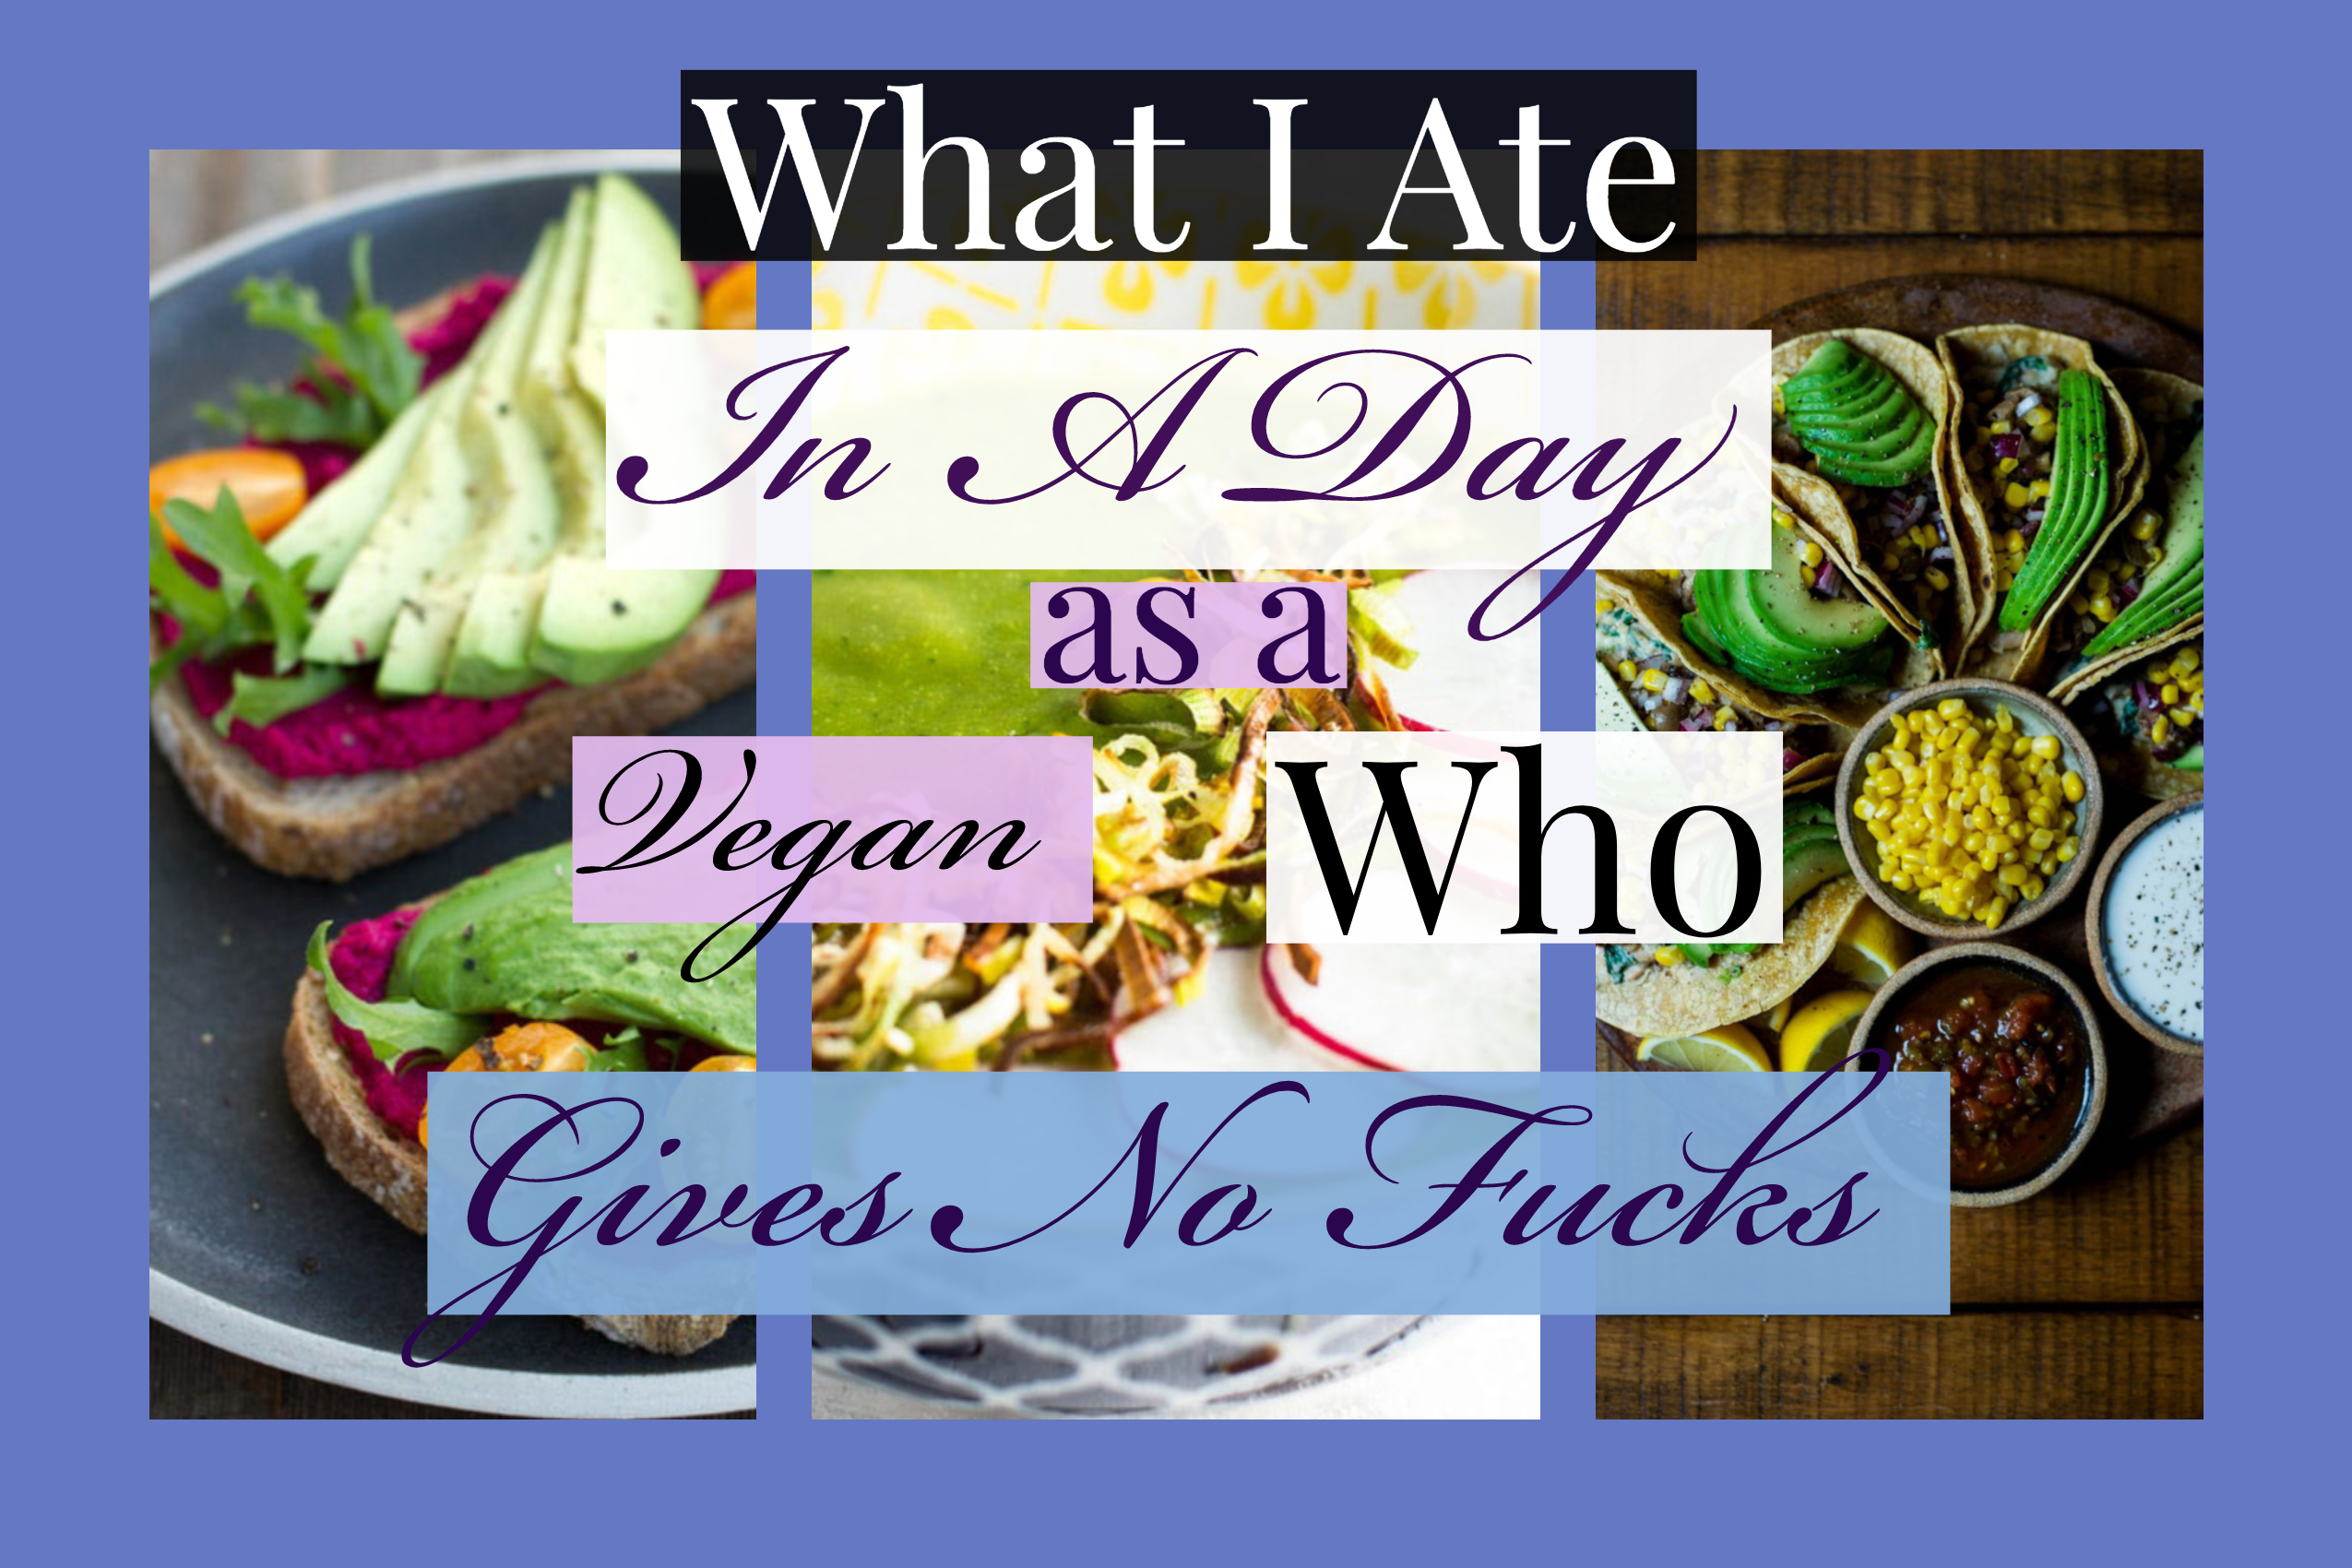 What I ate in a day as a vegan who gives no fucks